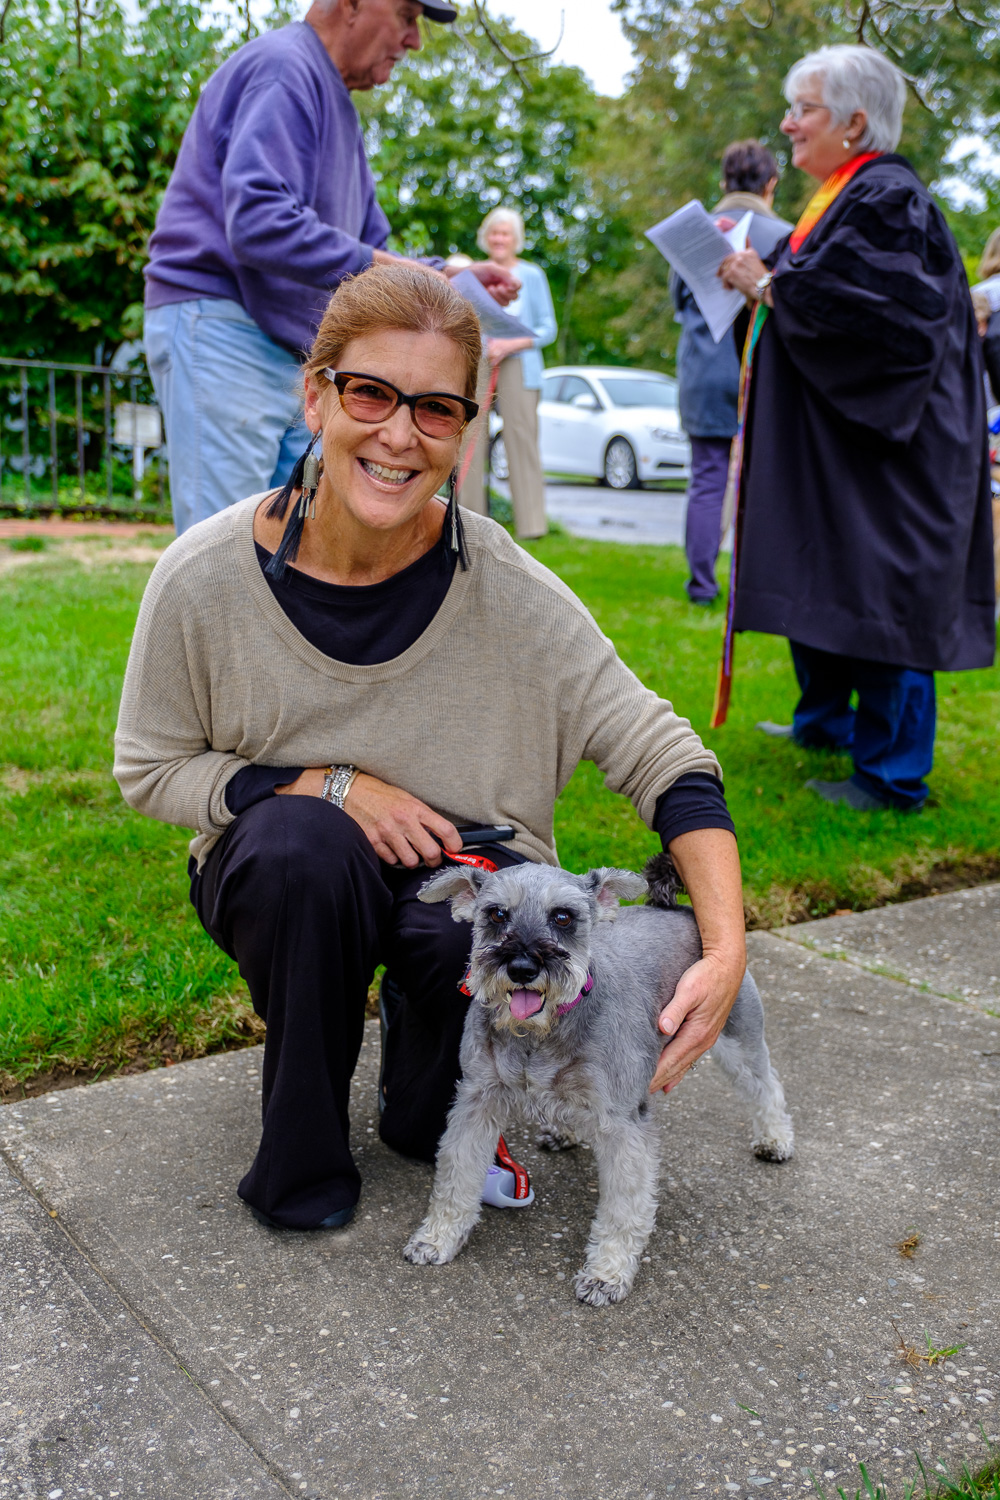 Cindy Raphael of Orient with her mini schnauzer, Torhi. (Credit: Jeremy Garretson)